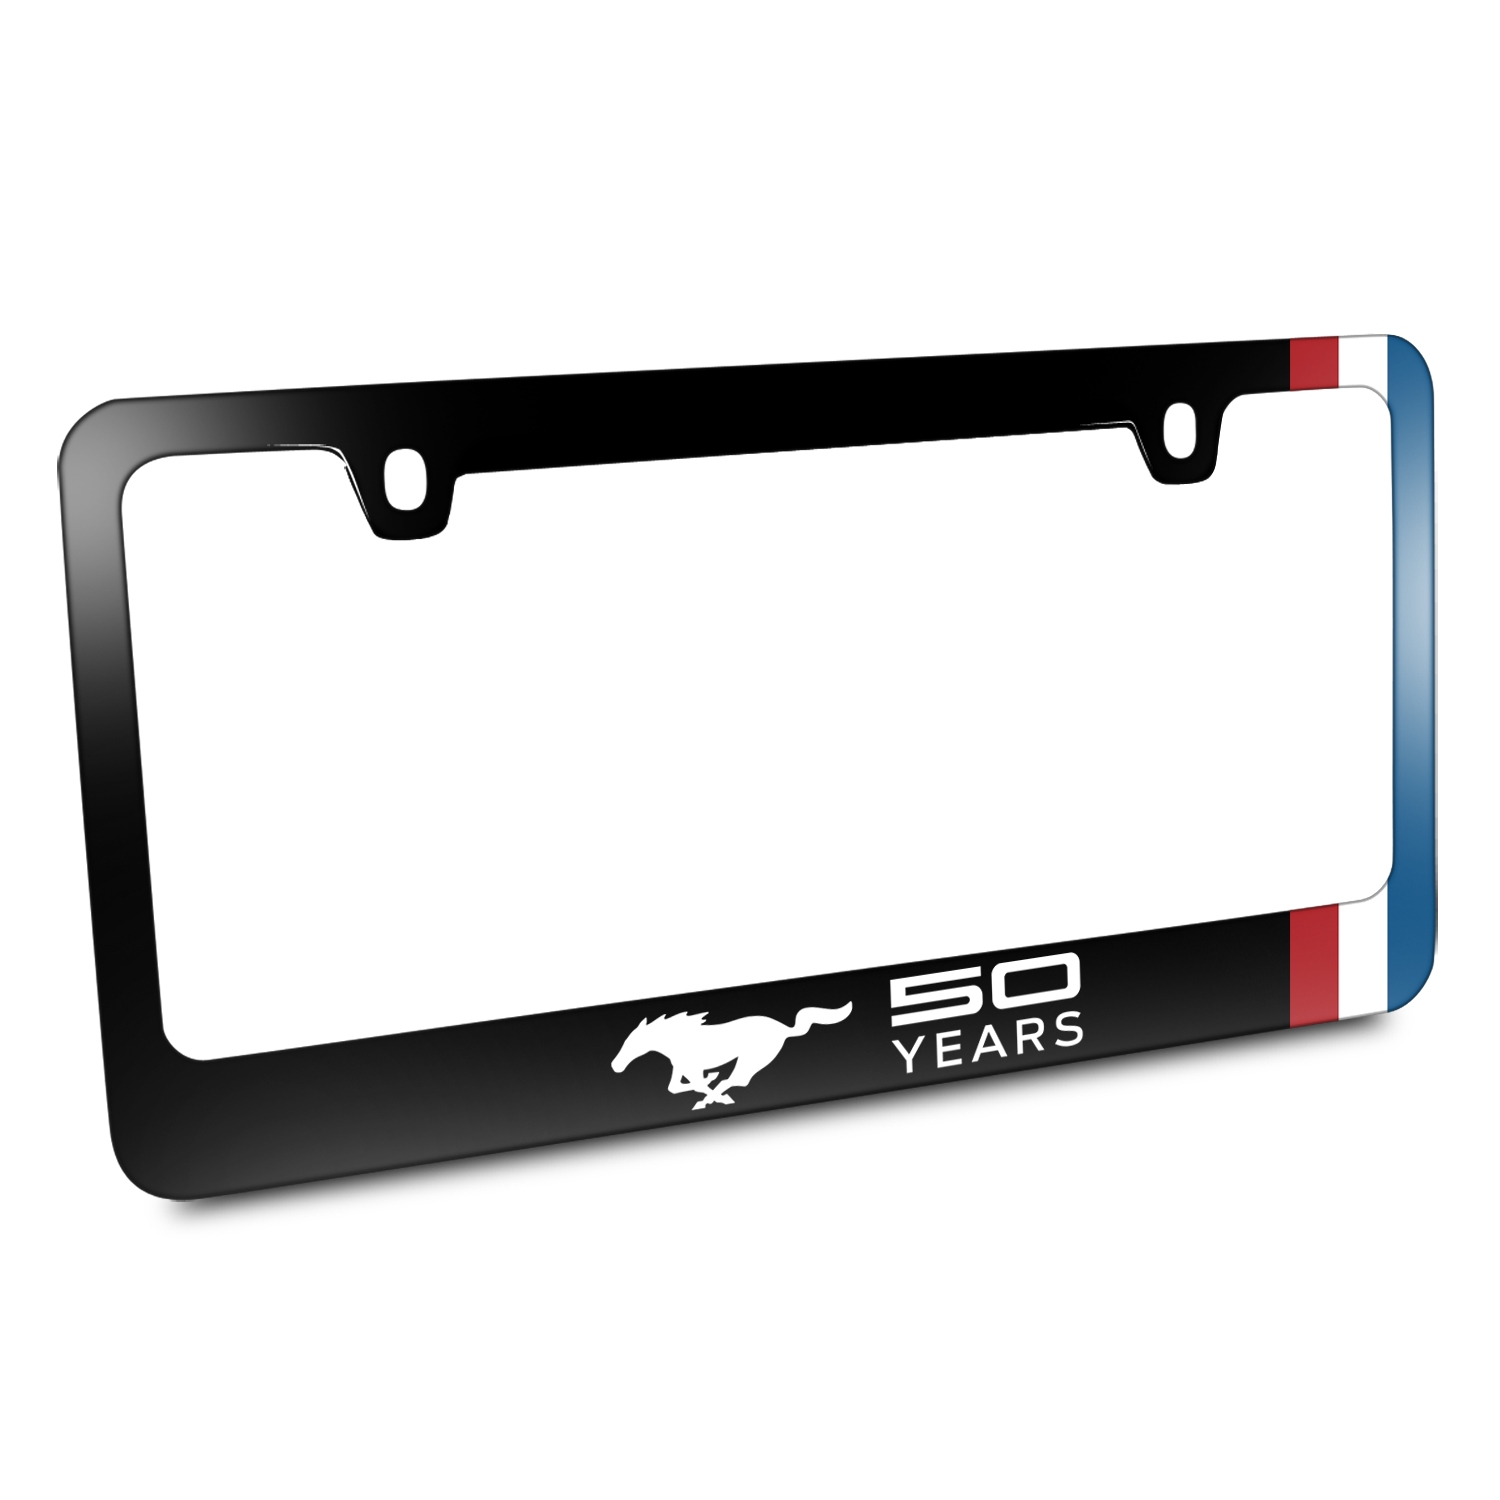 Ford Mustang 50 Years Side Red White Blue Stripe Black Metal License Plate Frame